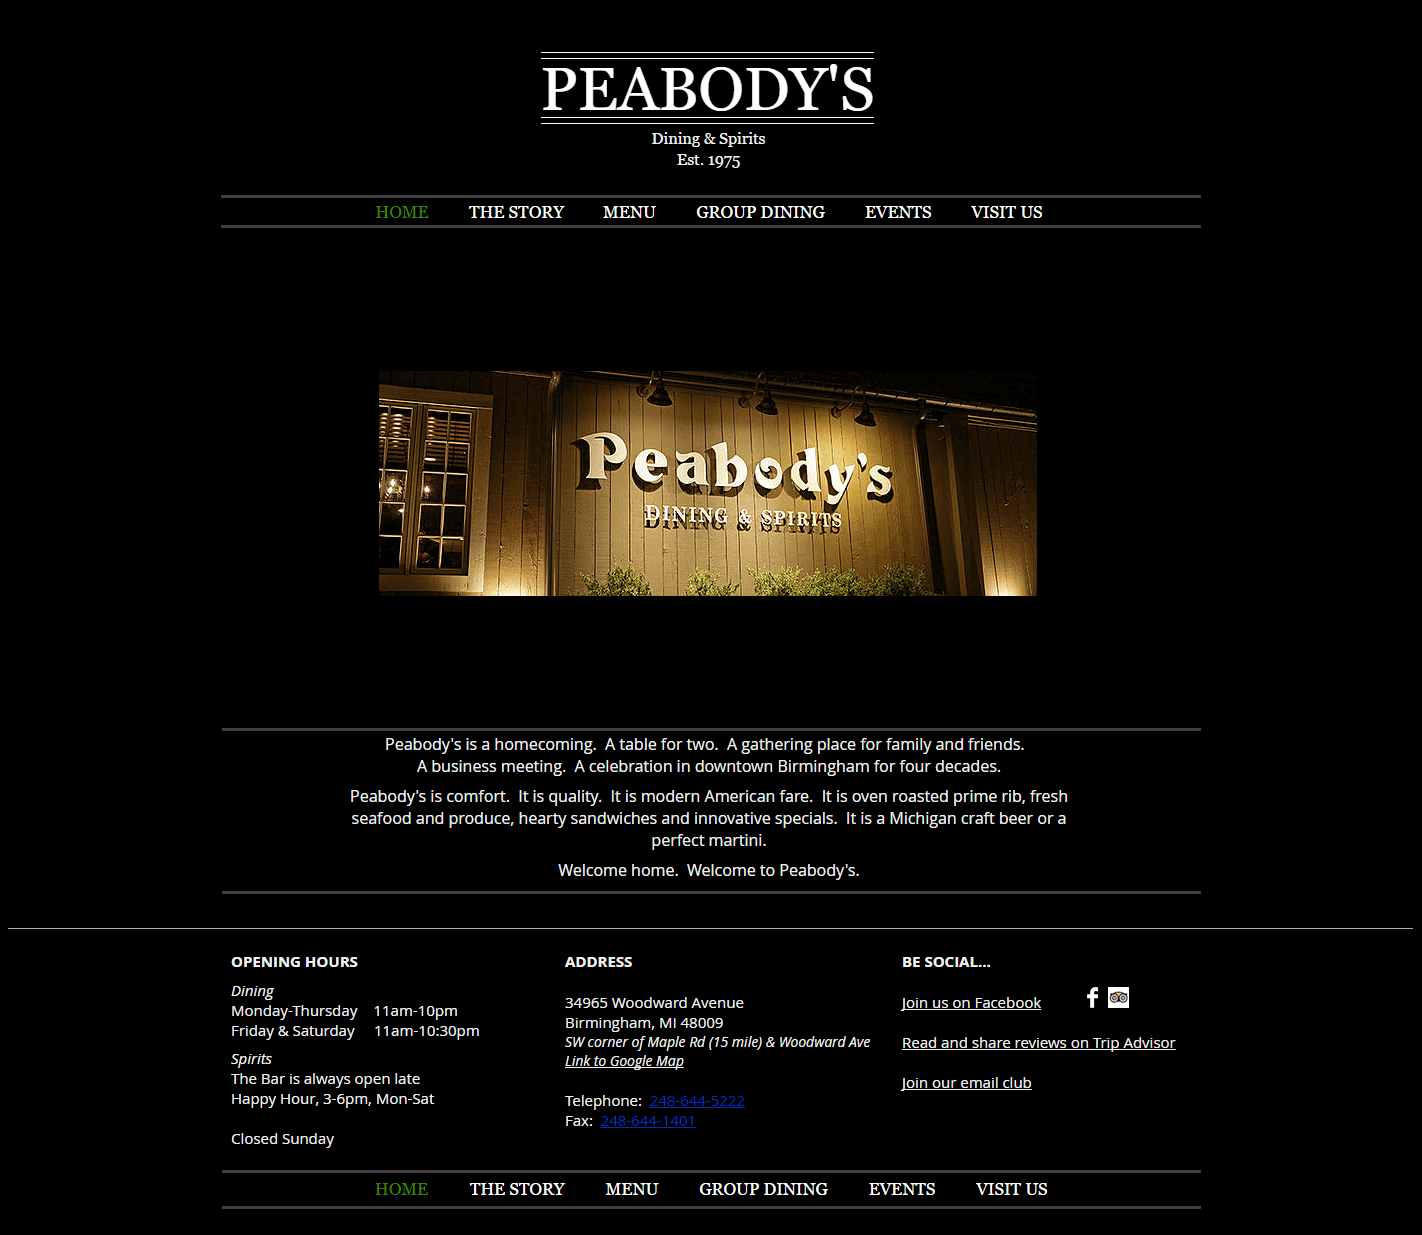 Peabodys Restaurant - Website Design & Development by Abke Design